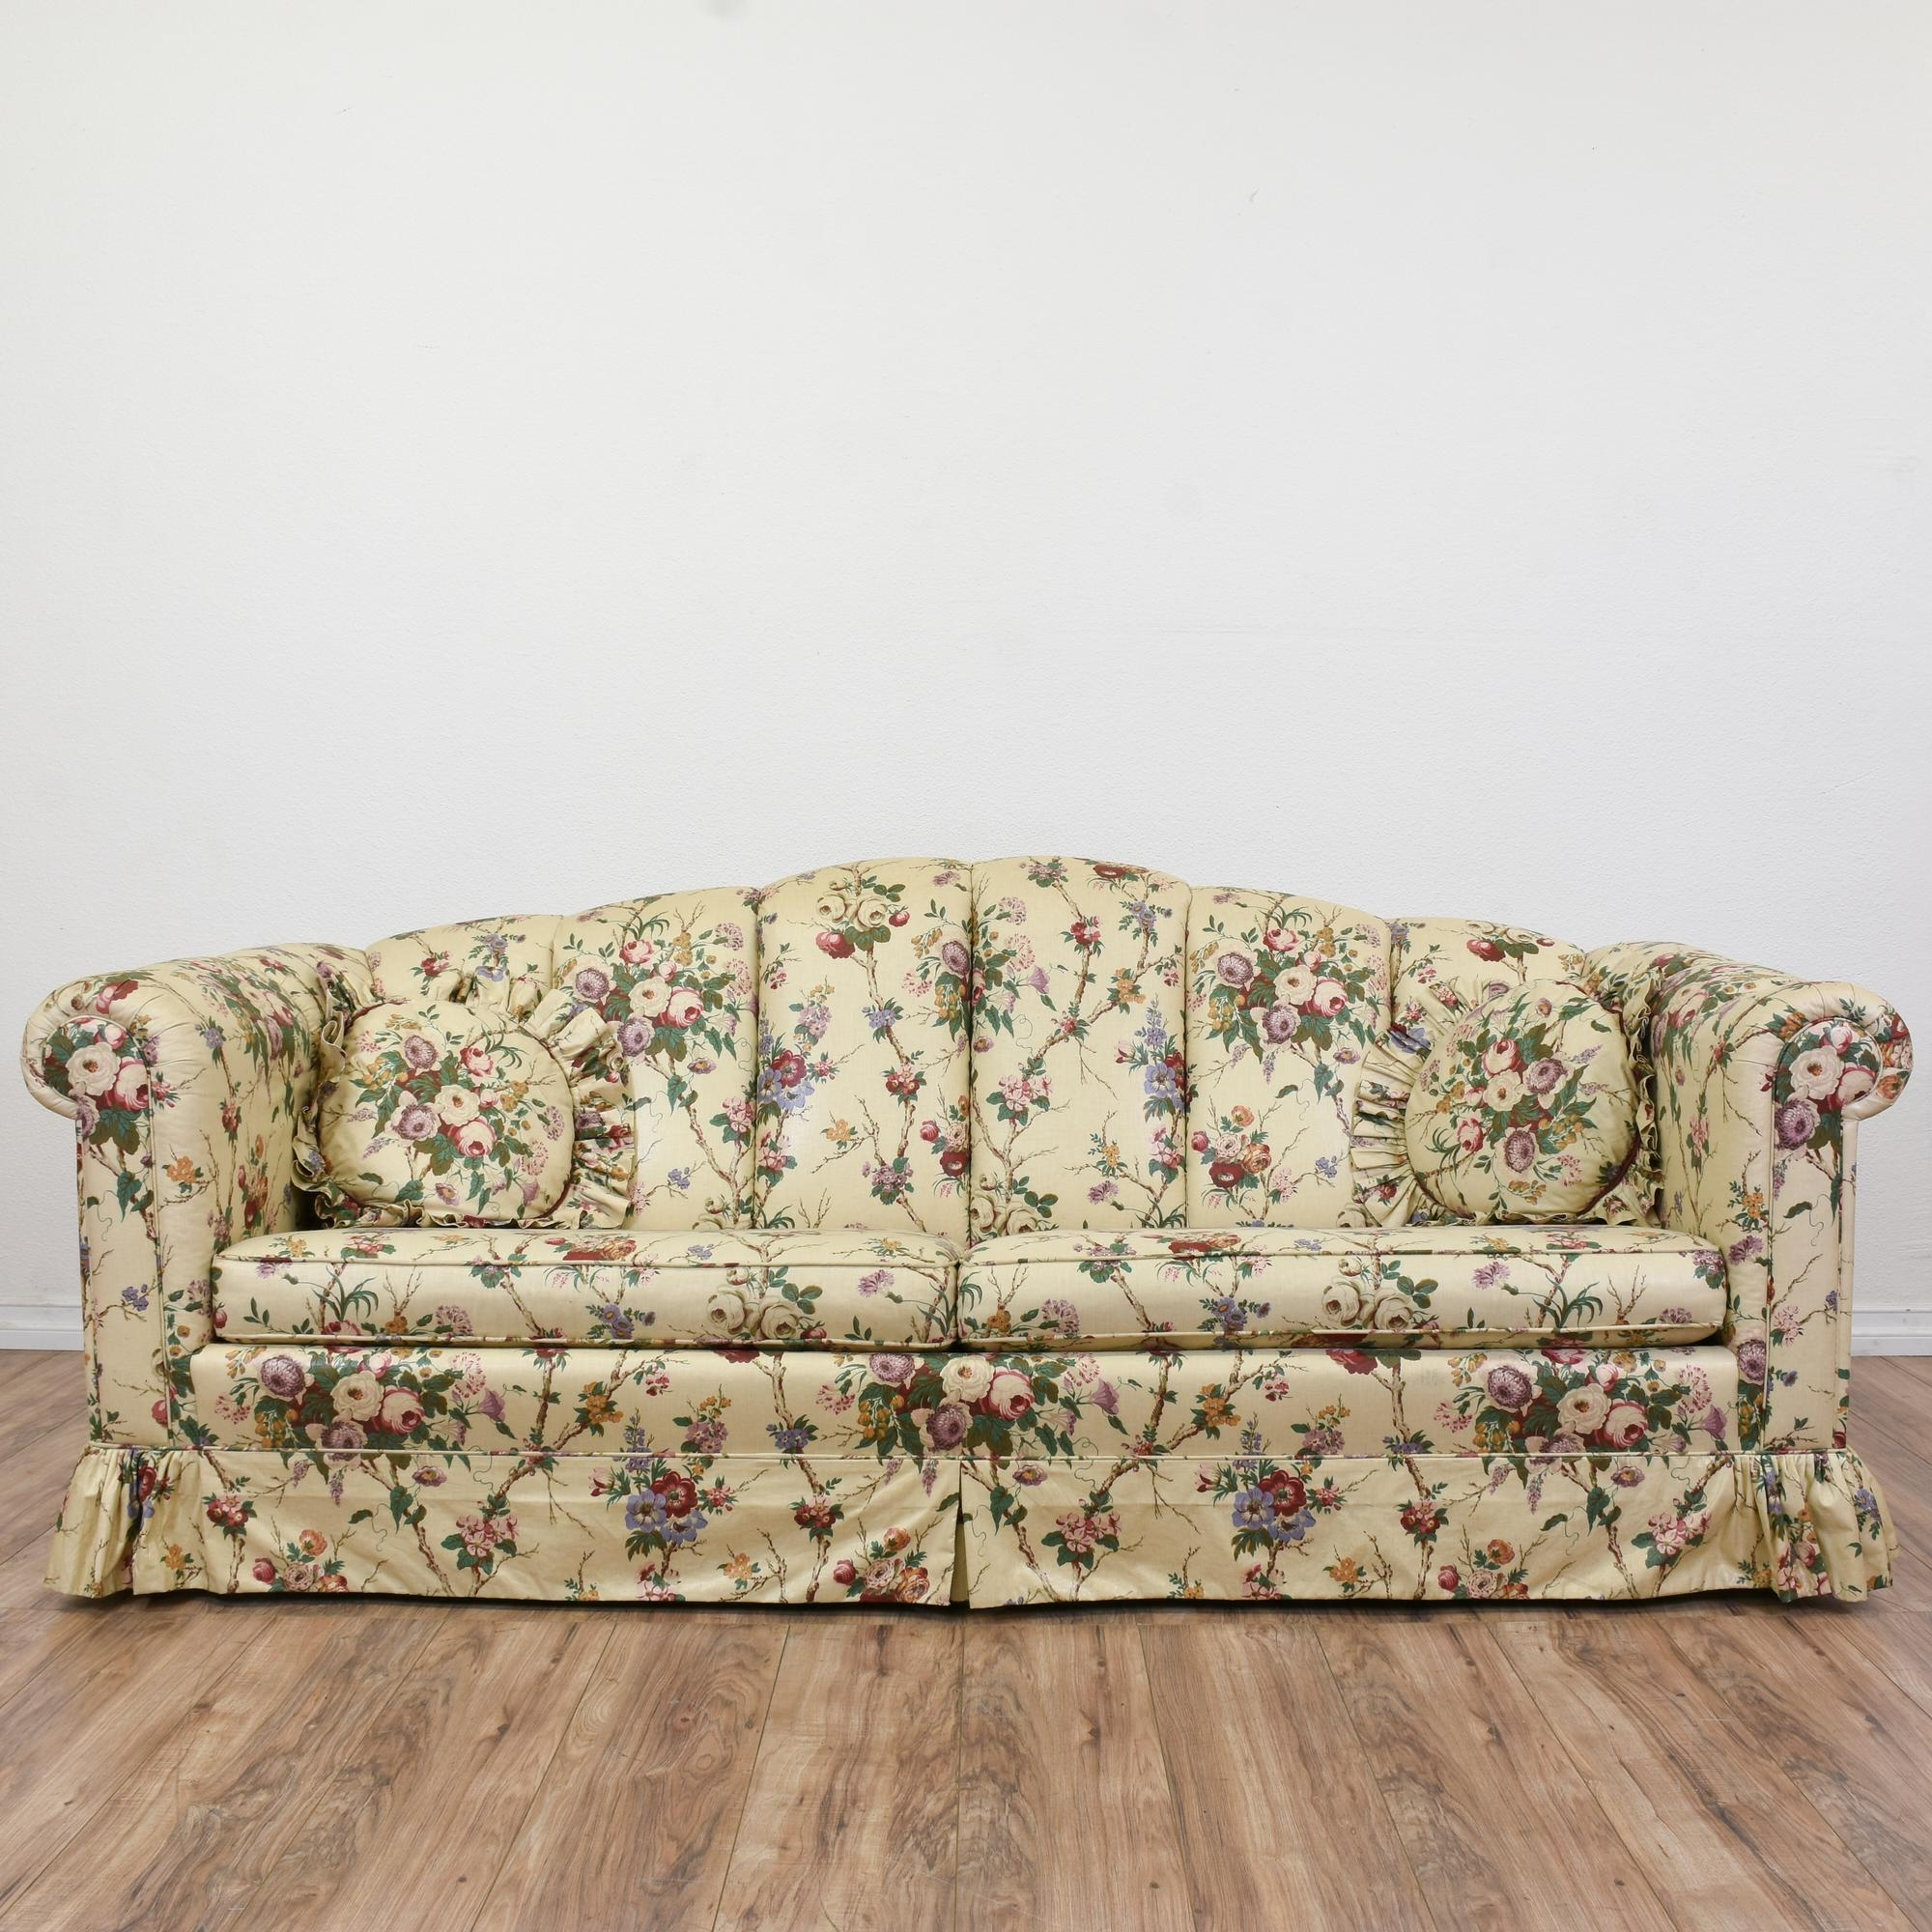 Floral Liberty Chintz Print Sofa Long Sofa Country Sofas And Inside Chintz Sofas (Image 9 of 15)